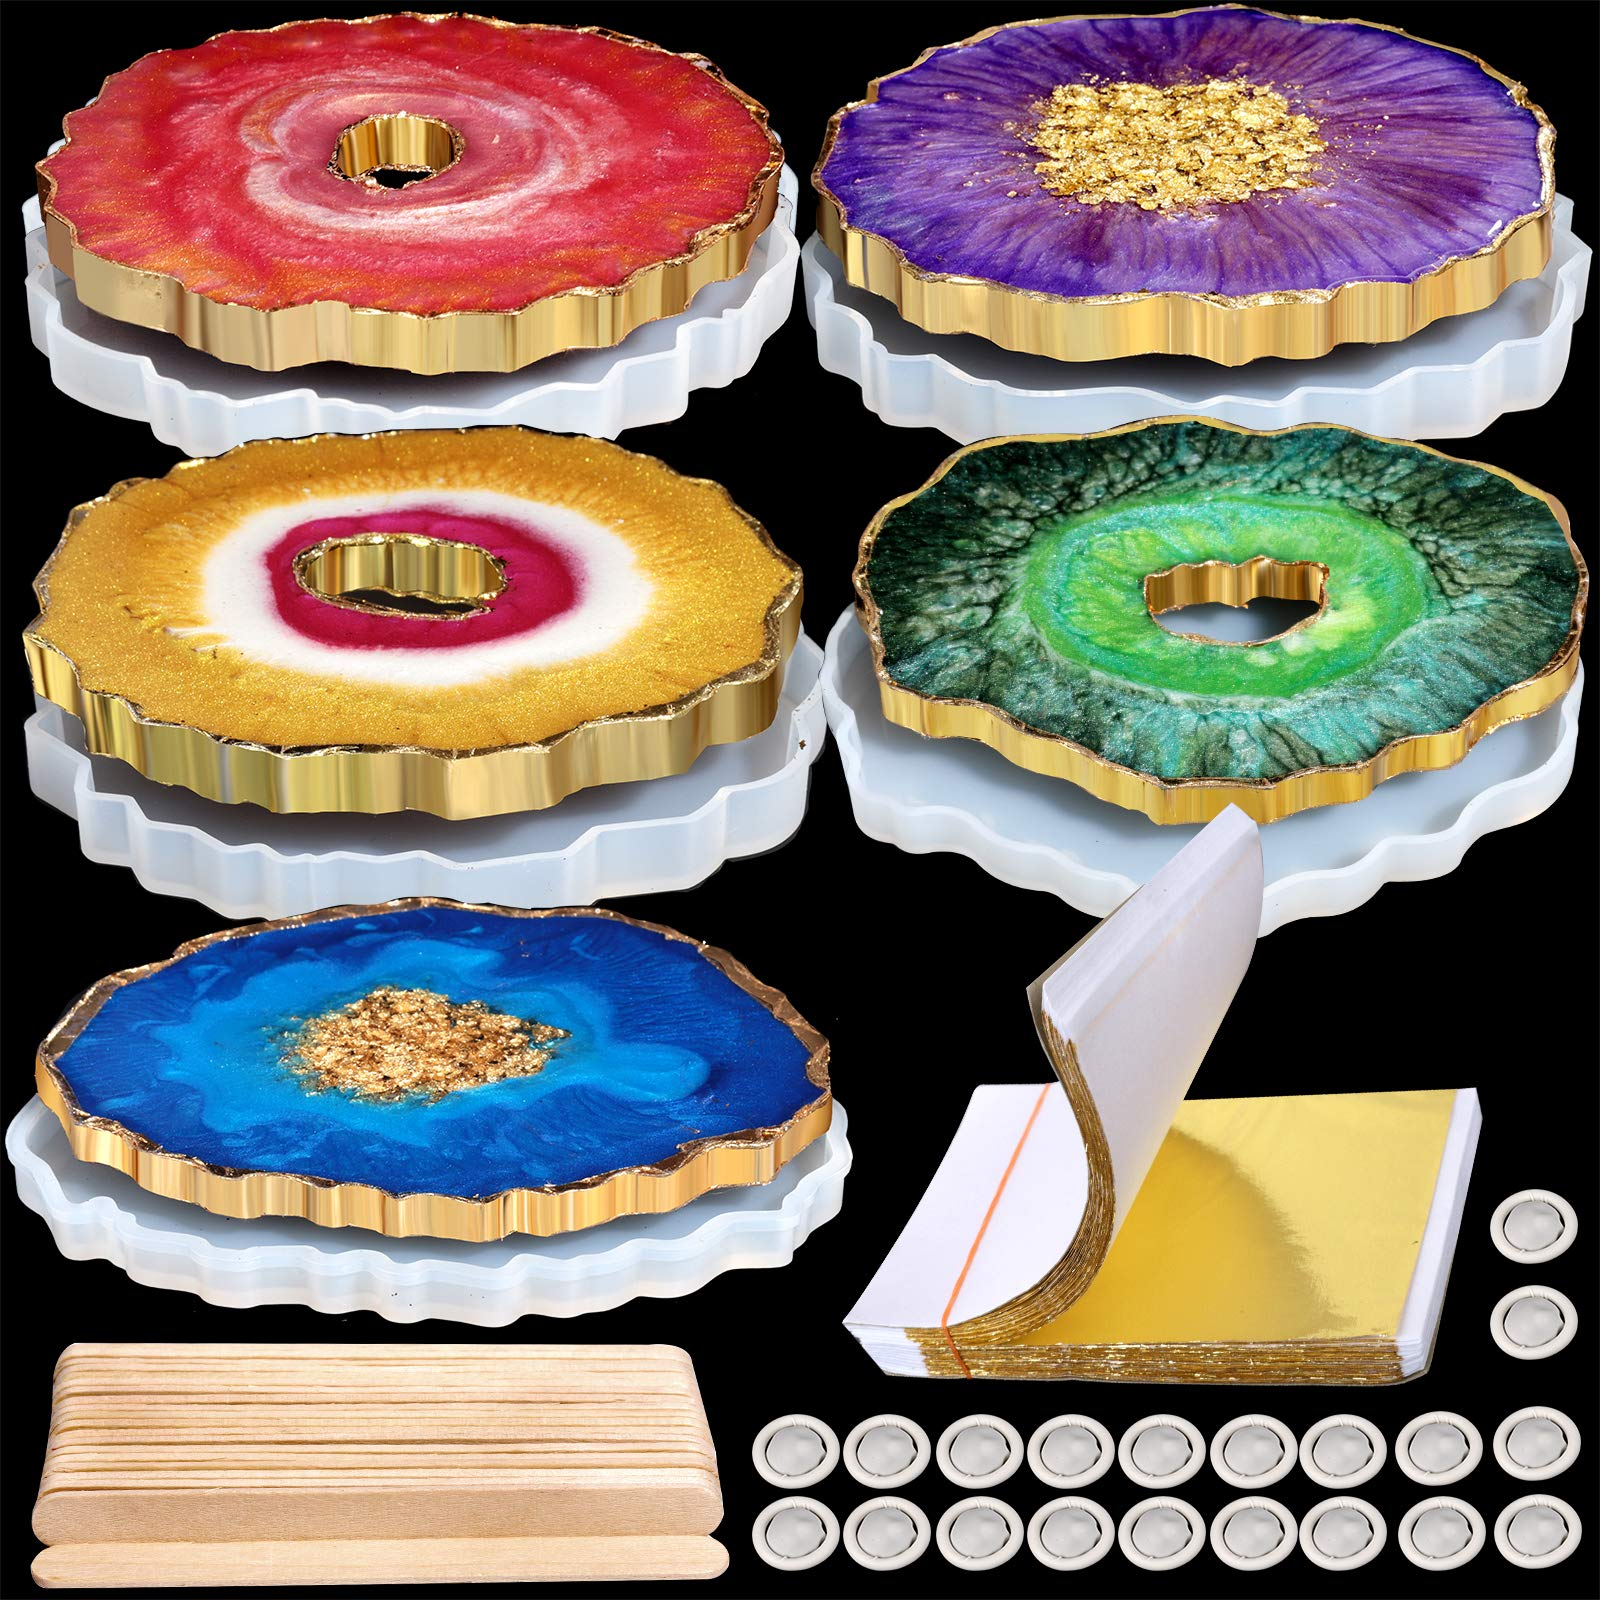 LEOBRO 5 Pack Coaster Resin Molds, Silicone Coaster Molds, 100 Pcs Shiny Gold Leaf, 20 Pcs Wood Mixing Sticks, 20 Pcs Finger Cots